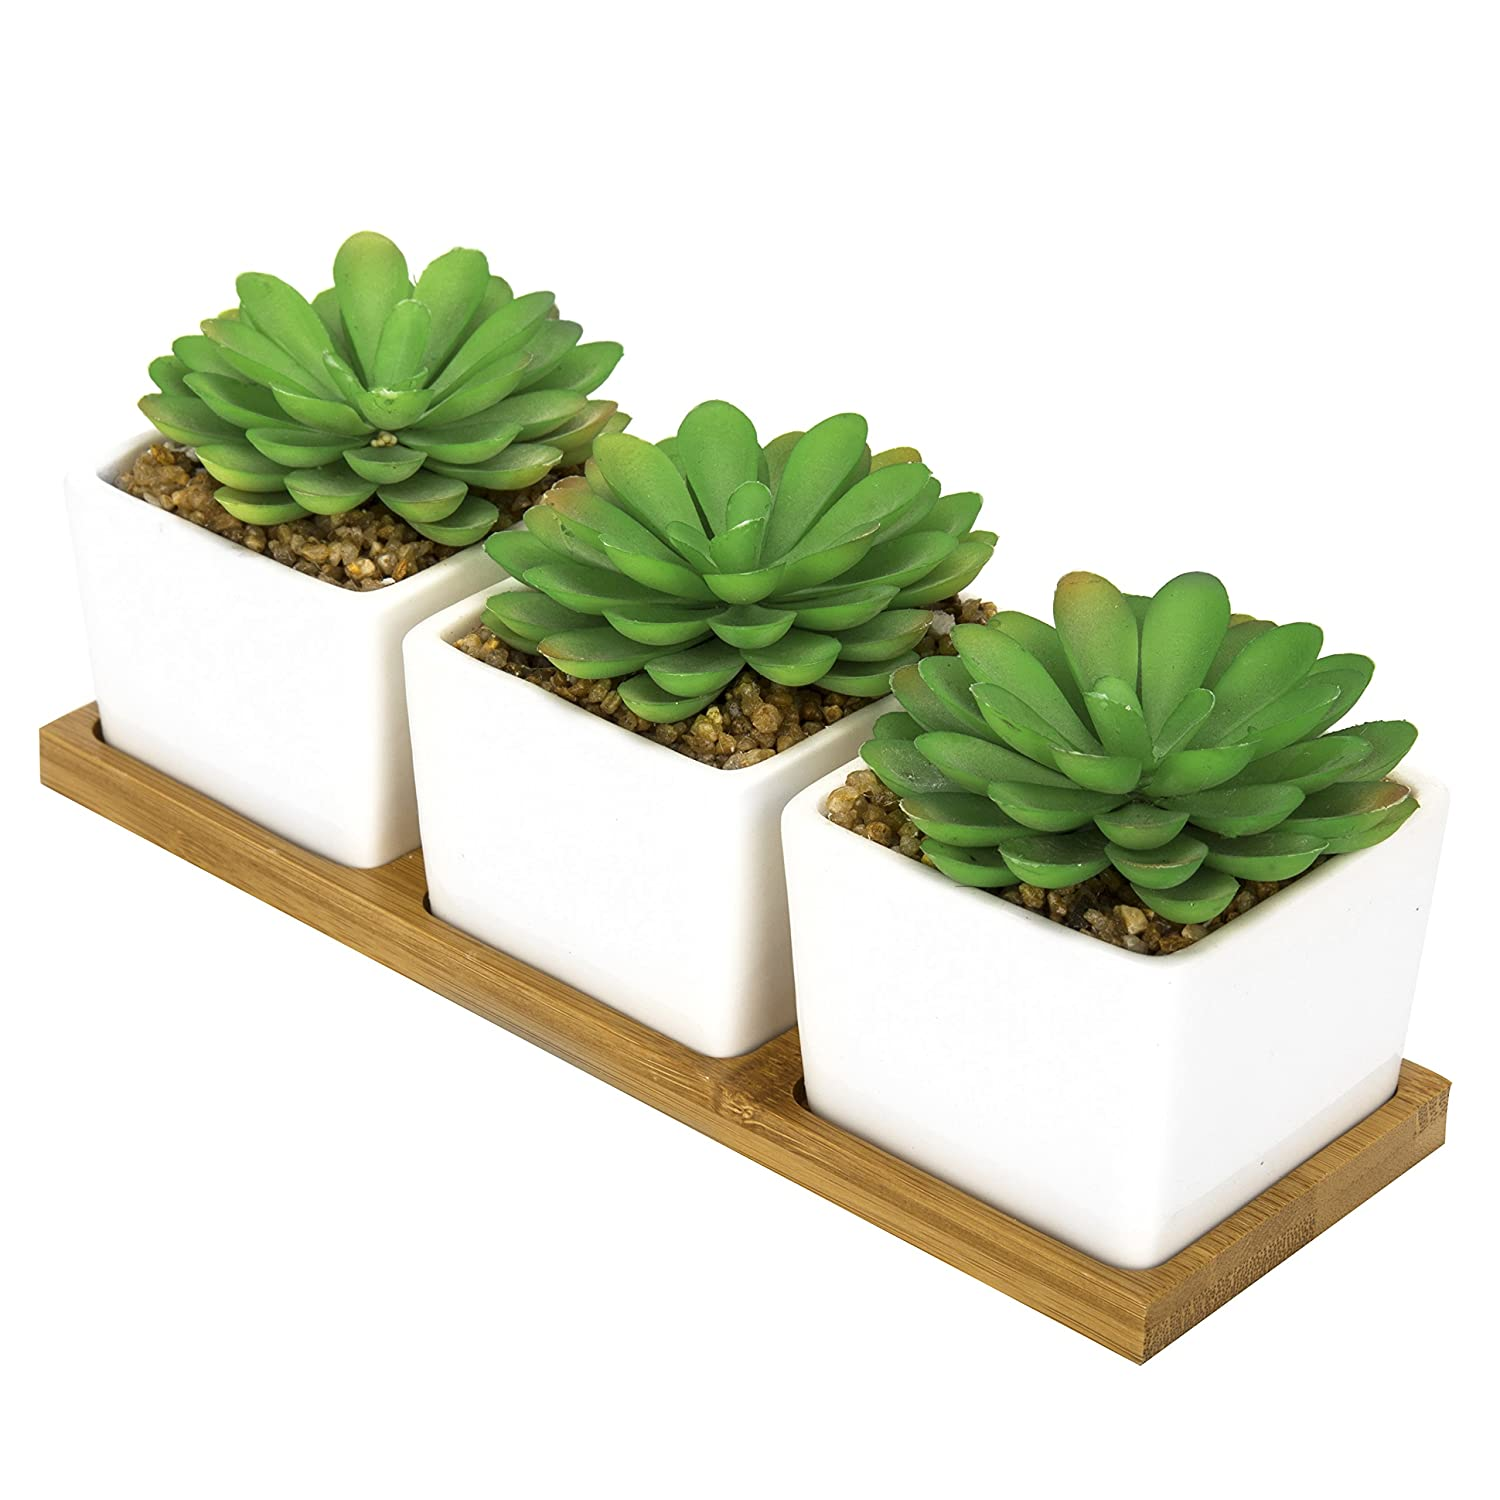 MyGift Set of 3 Artificial Echeveria Succulent Plants in Square White Ceramic Pots and Removable Bamboo Tray